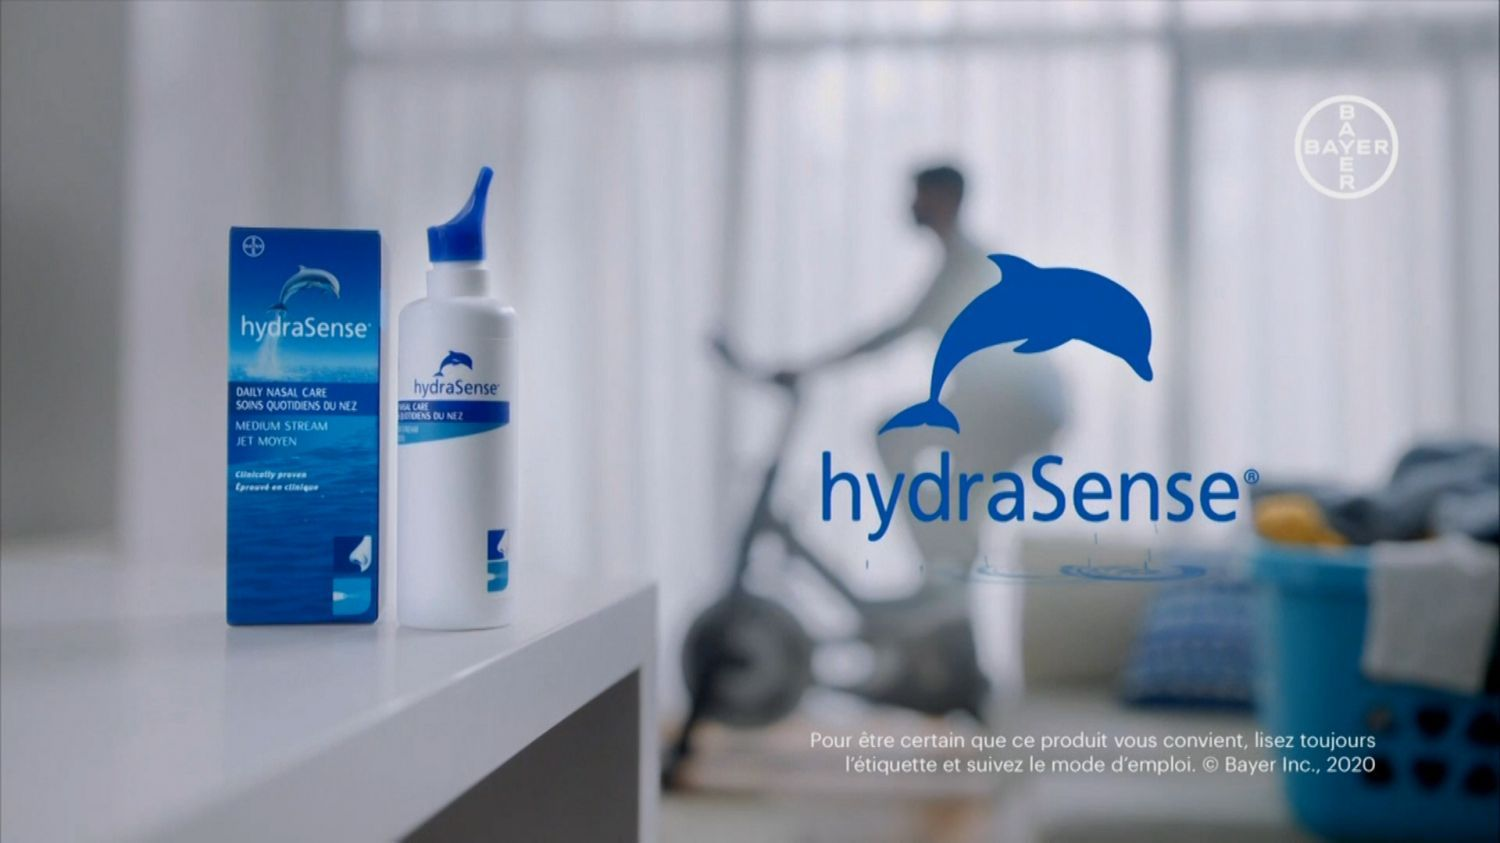 Hydrasense---kw---Healthcare_category---ICIRadio-Canada_-_October_25--2020---dtc---Canada---French---TV_commercial---15_seconds.mp4